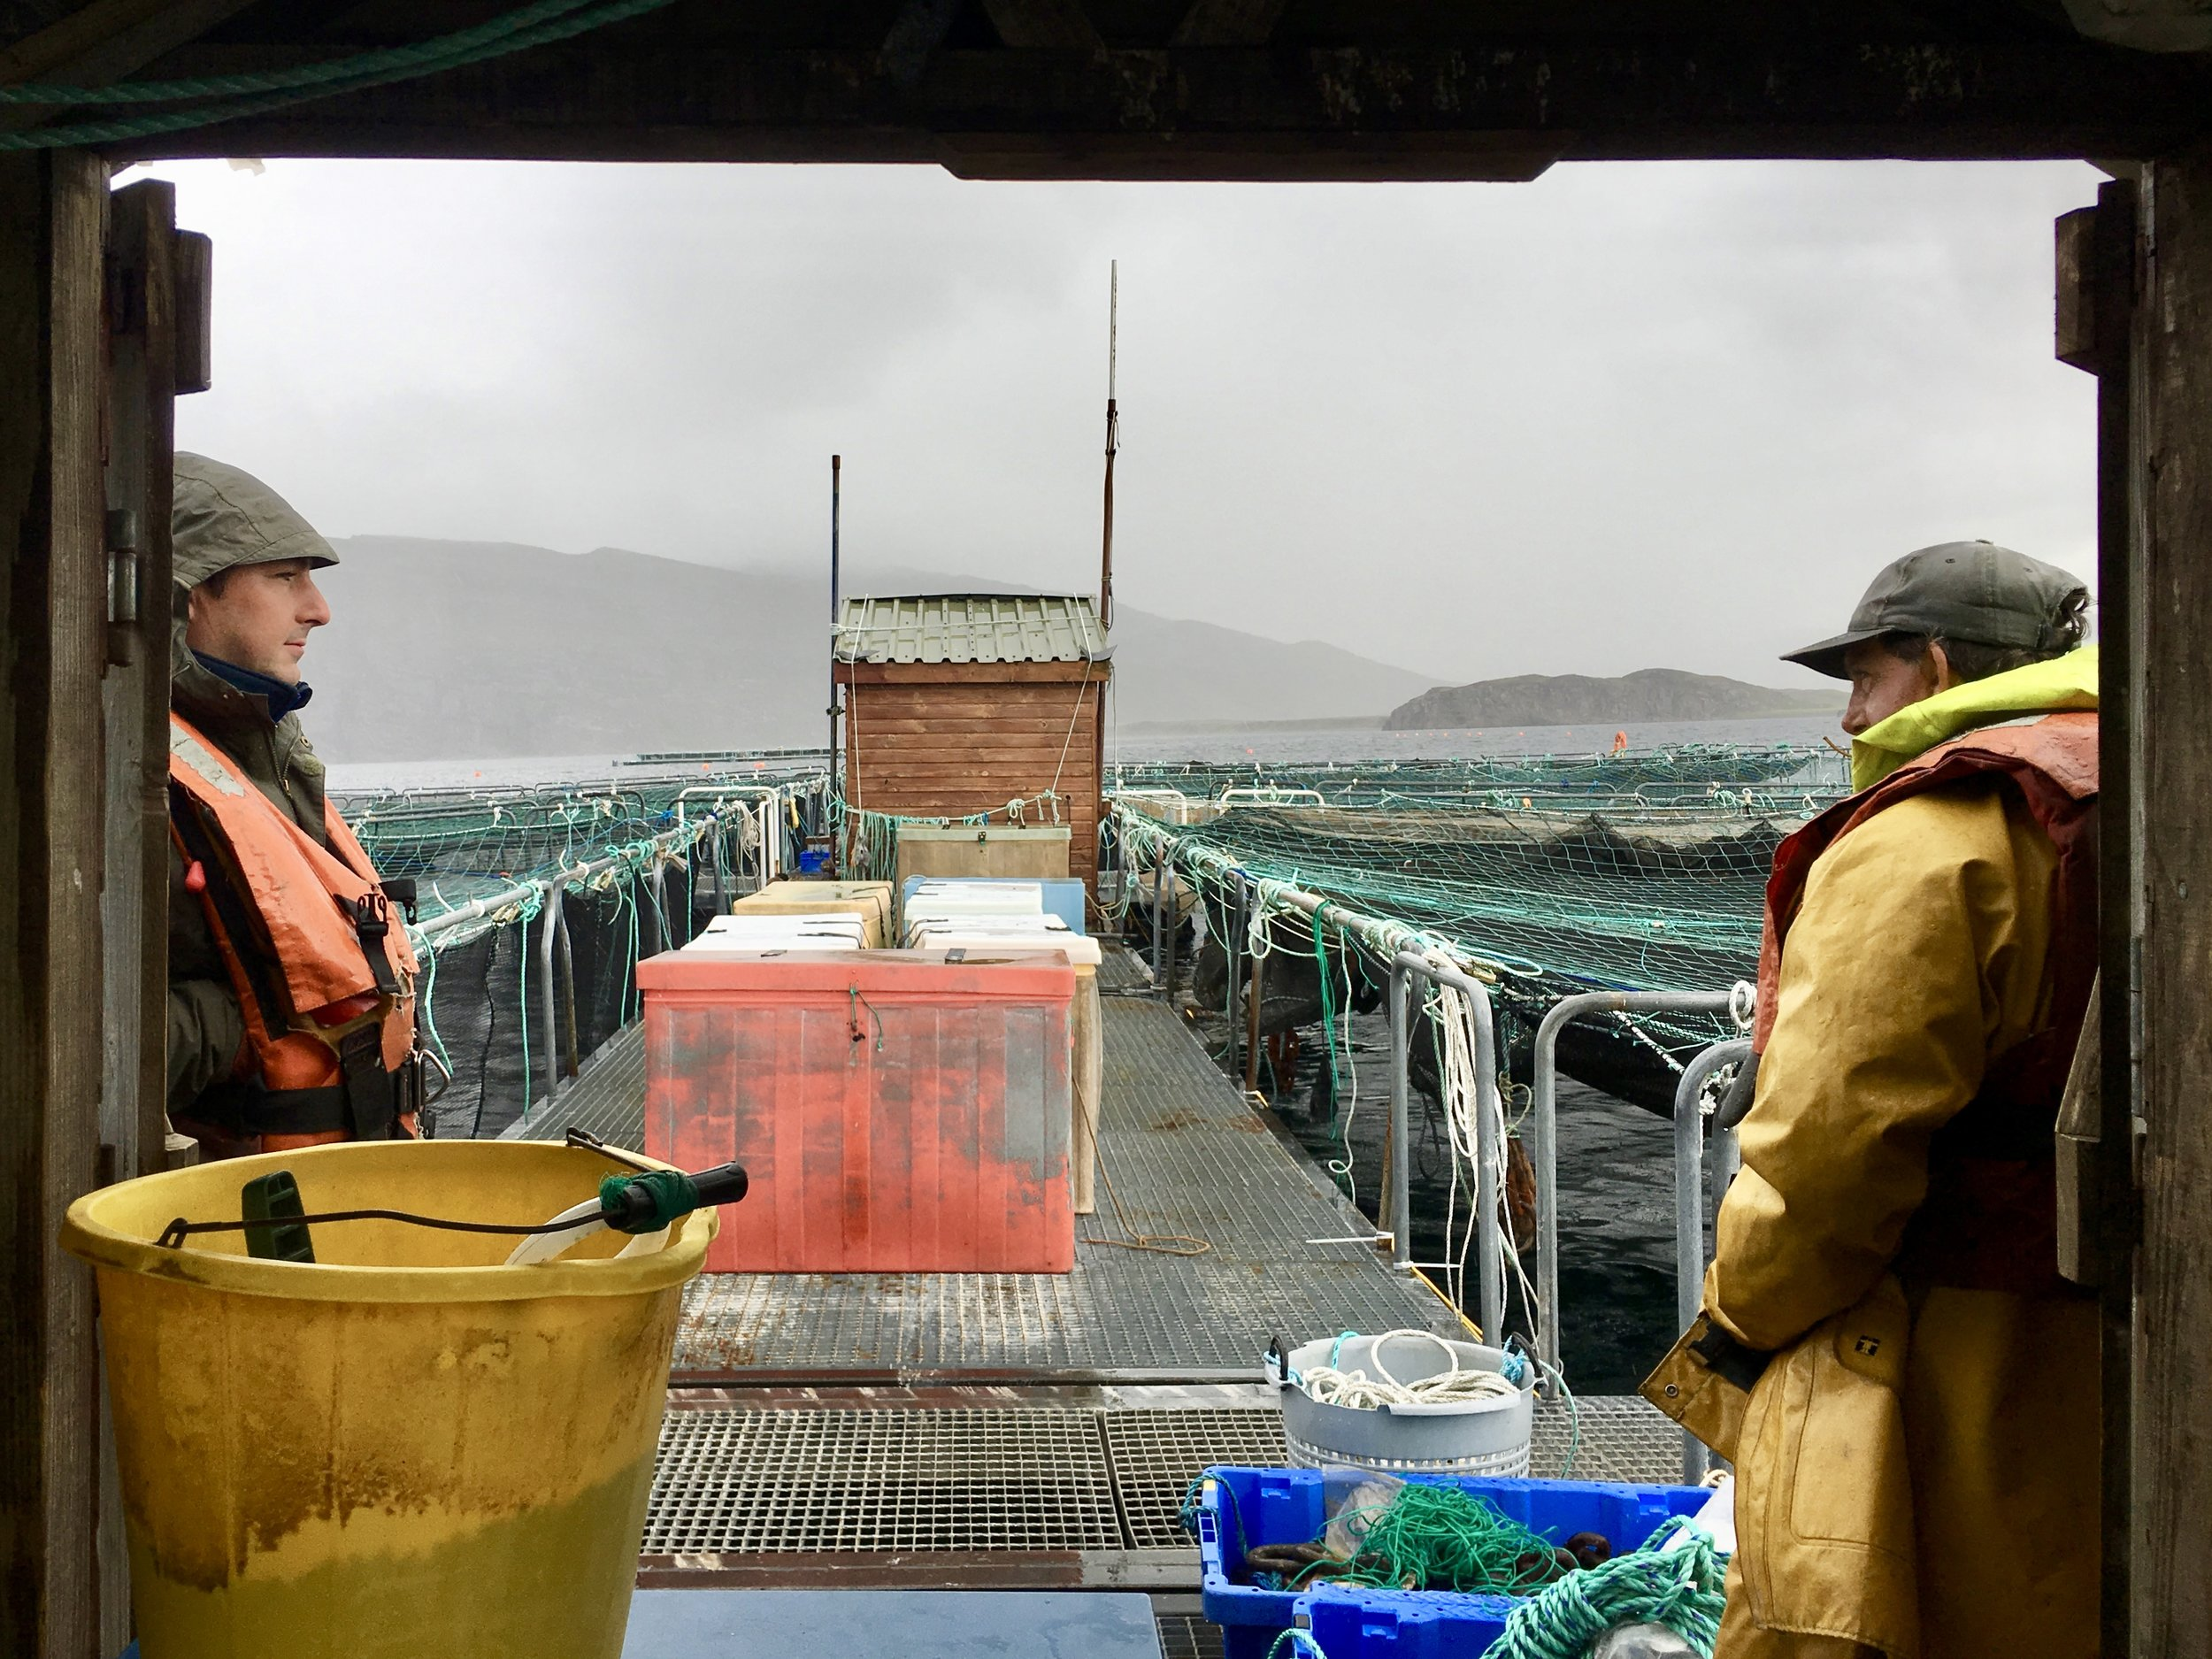 Scotland's $2 Billion Salmon Industry Is Thriving — But At What Cost? - for NPR's The Salt